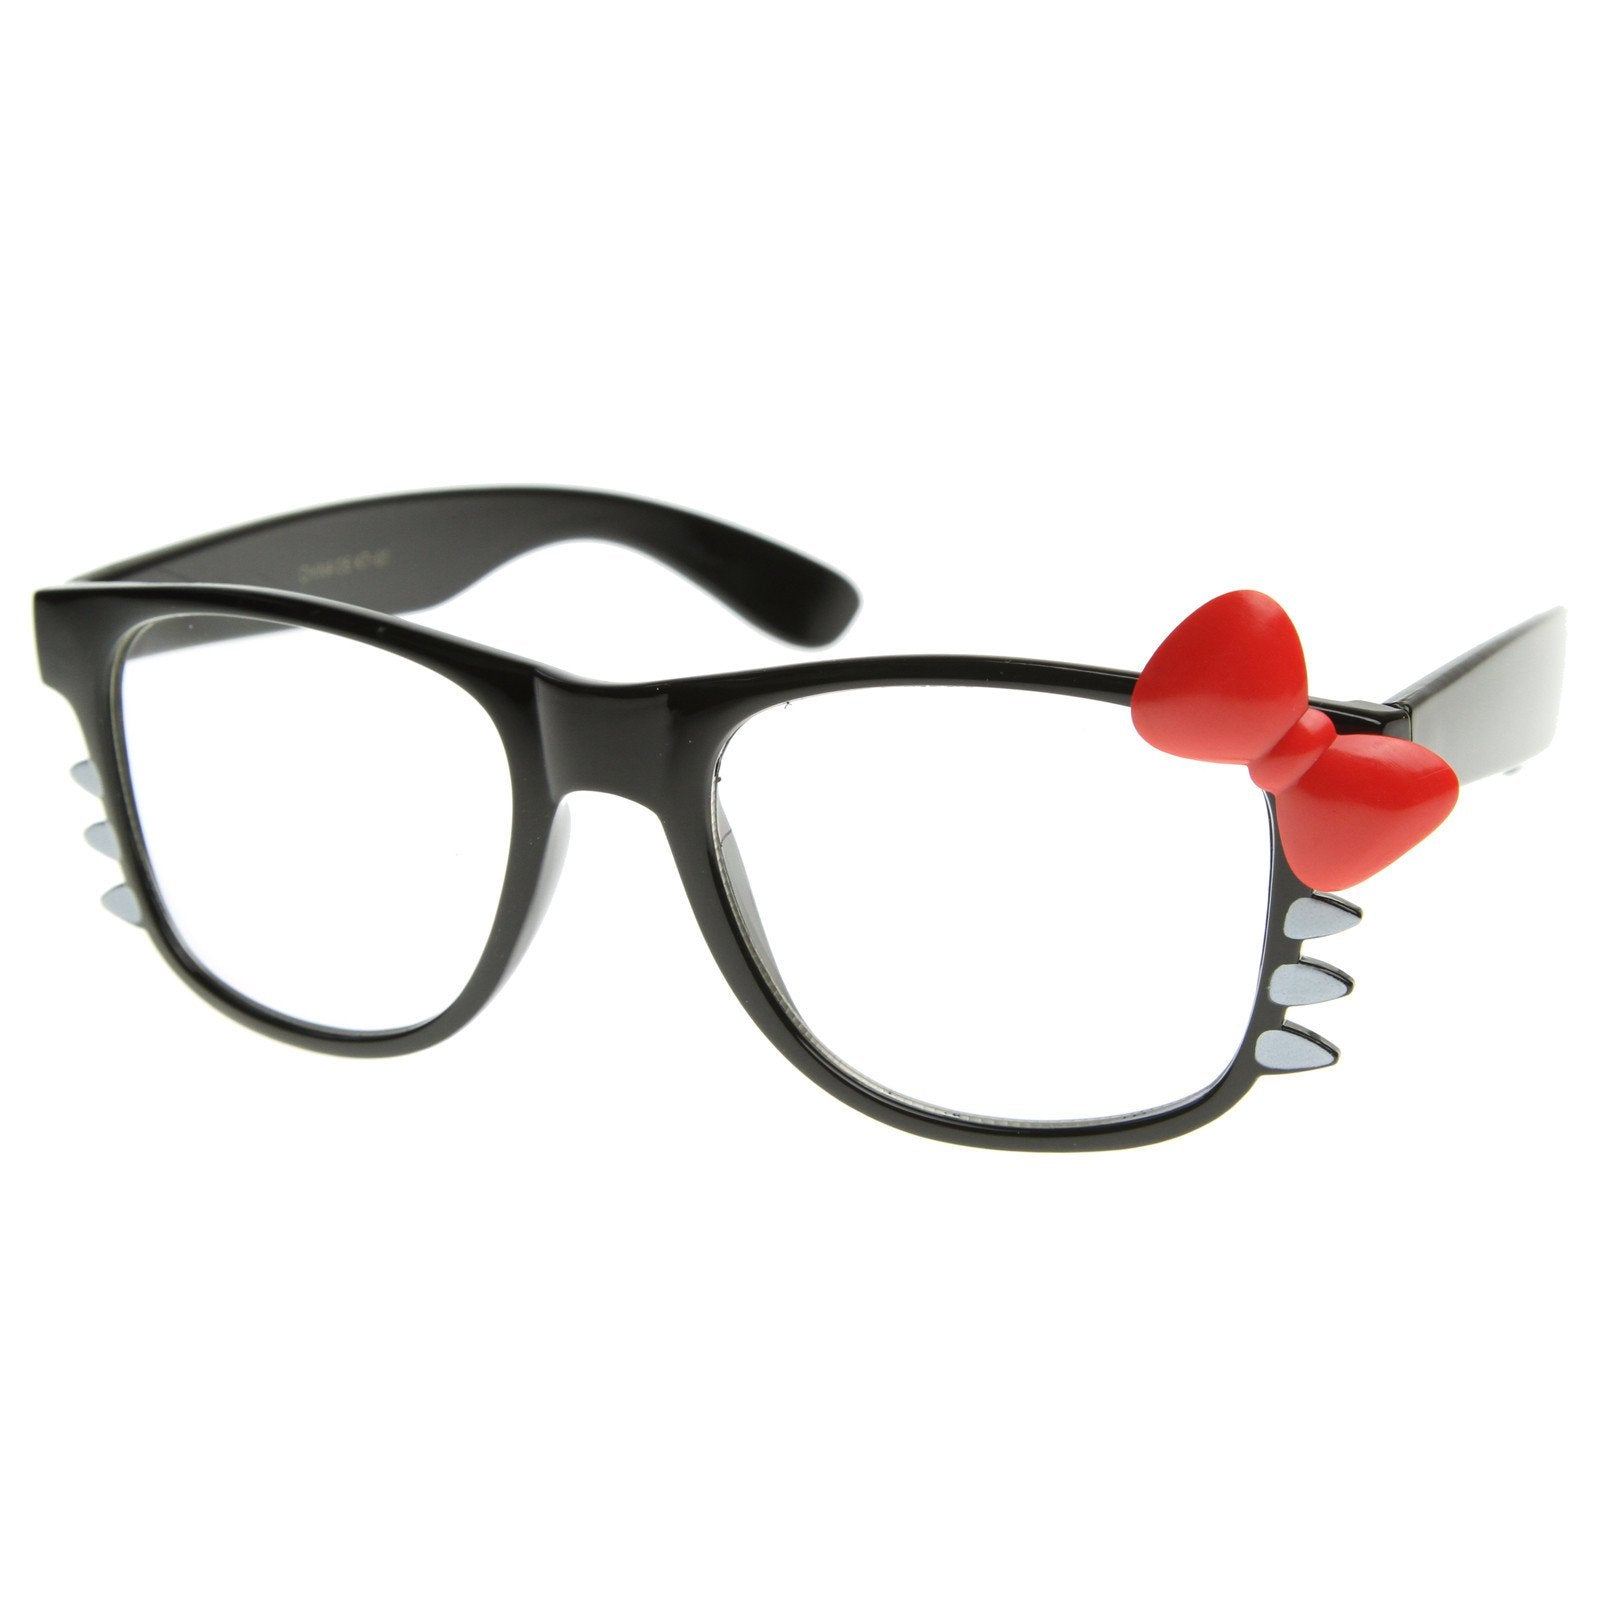 5e6a88158 Cute Womens Hello Kitty Bow Clear Lens Glasses With Whiskers 8499 · Black  Red Bow